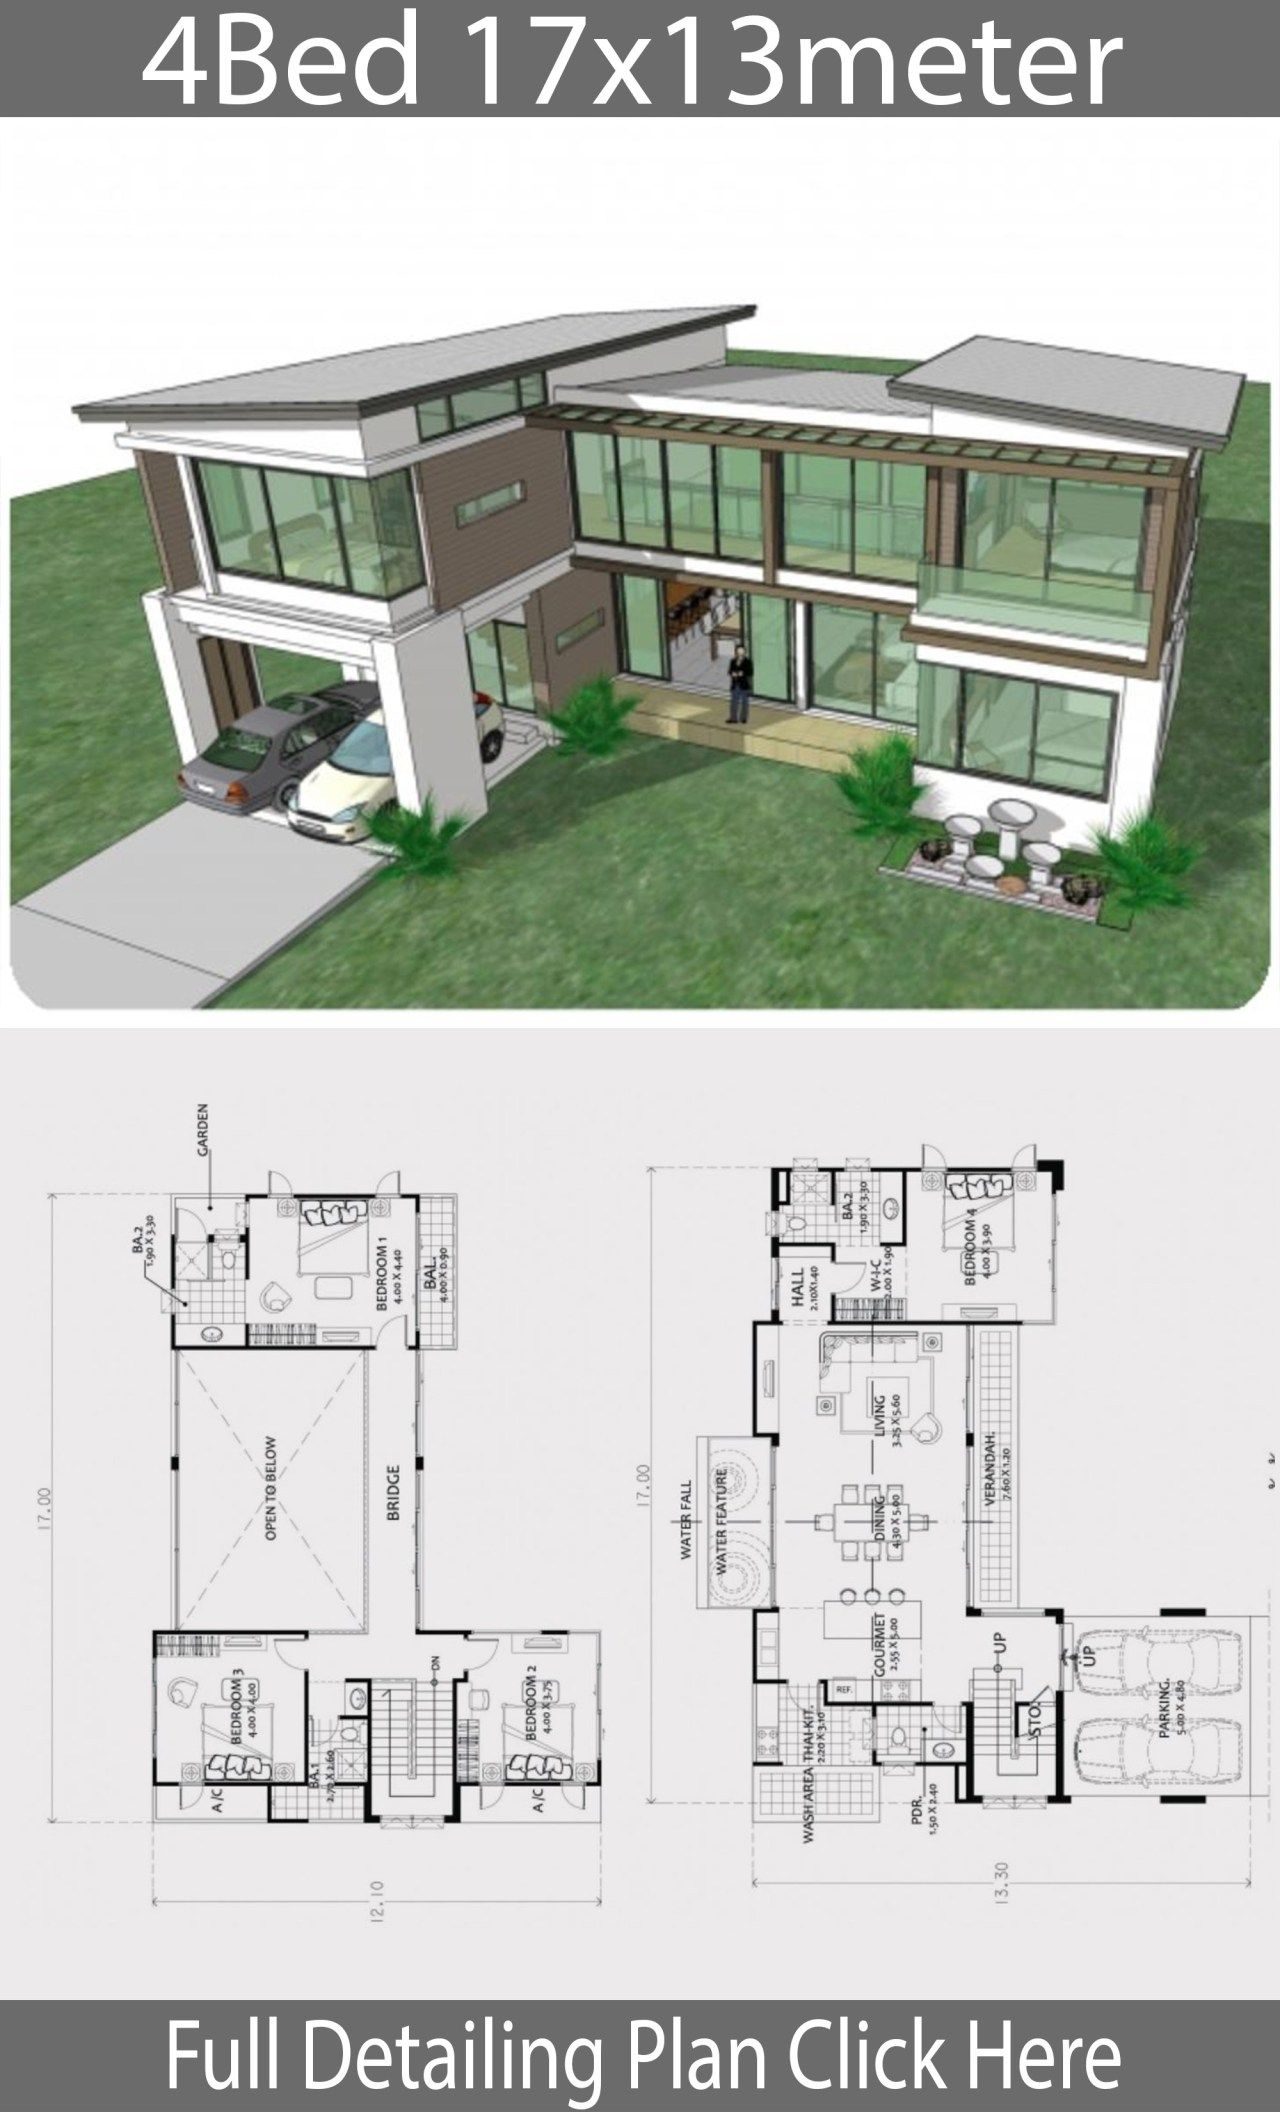 Home Design Plan 17x13m With 4 Bedrooms Home Ideas Big Modern Houses Contemporary House Plans House Layout Plans